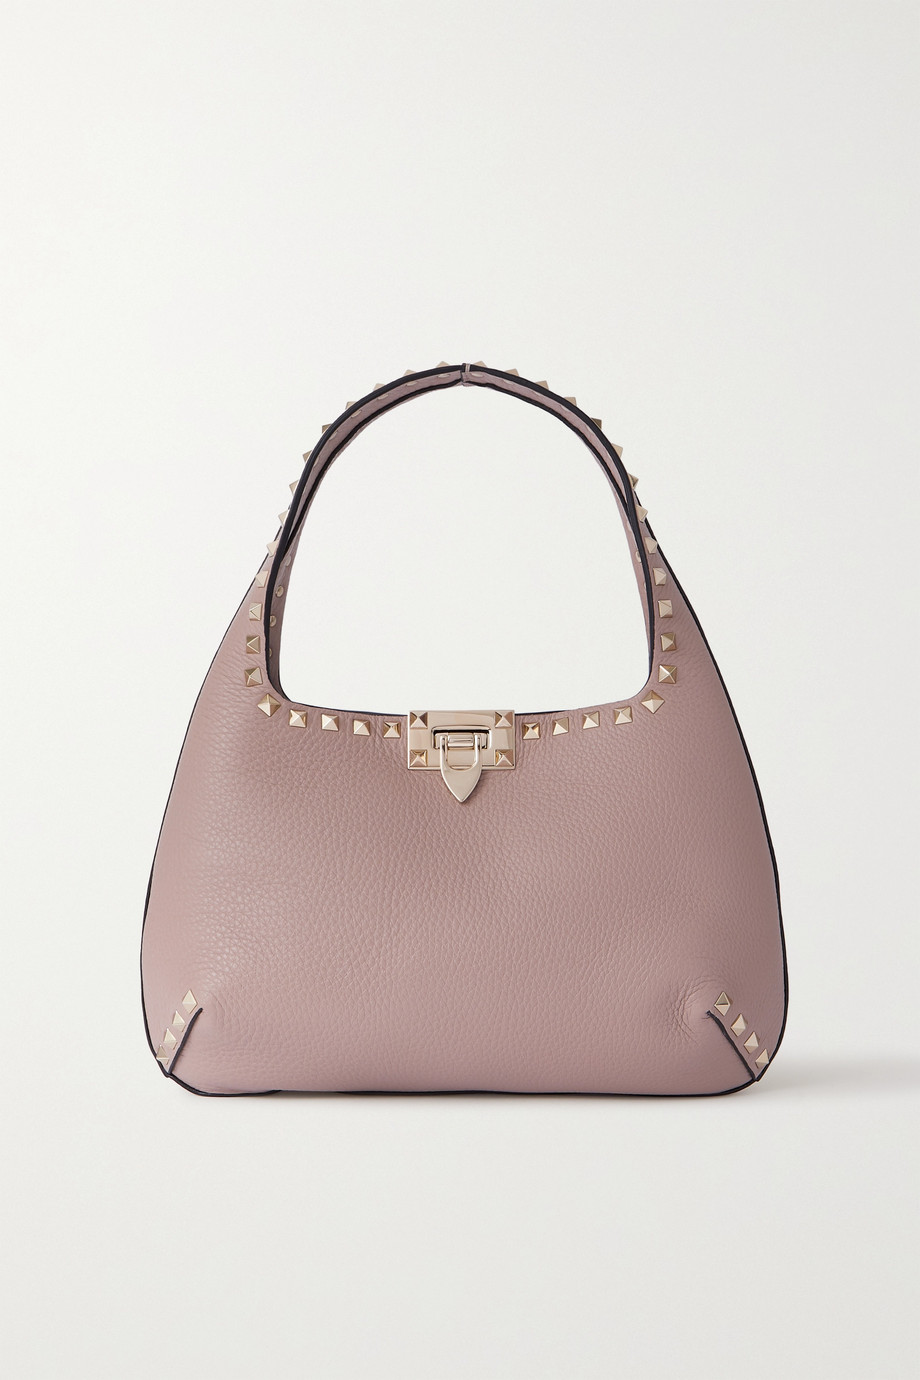 VALENTINO Valentino Garavani Rockstud small textured-leather tote